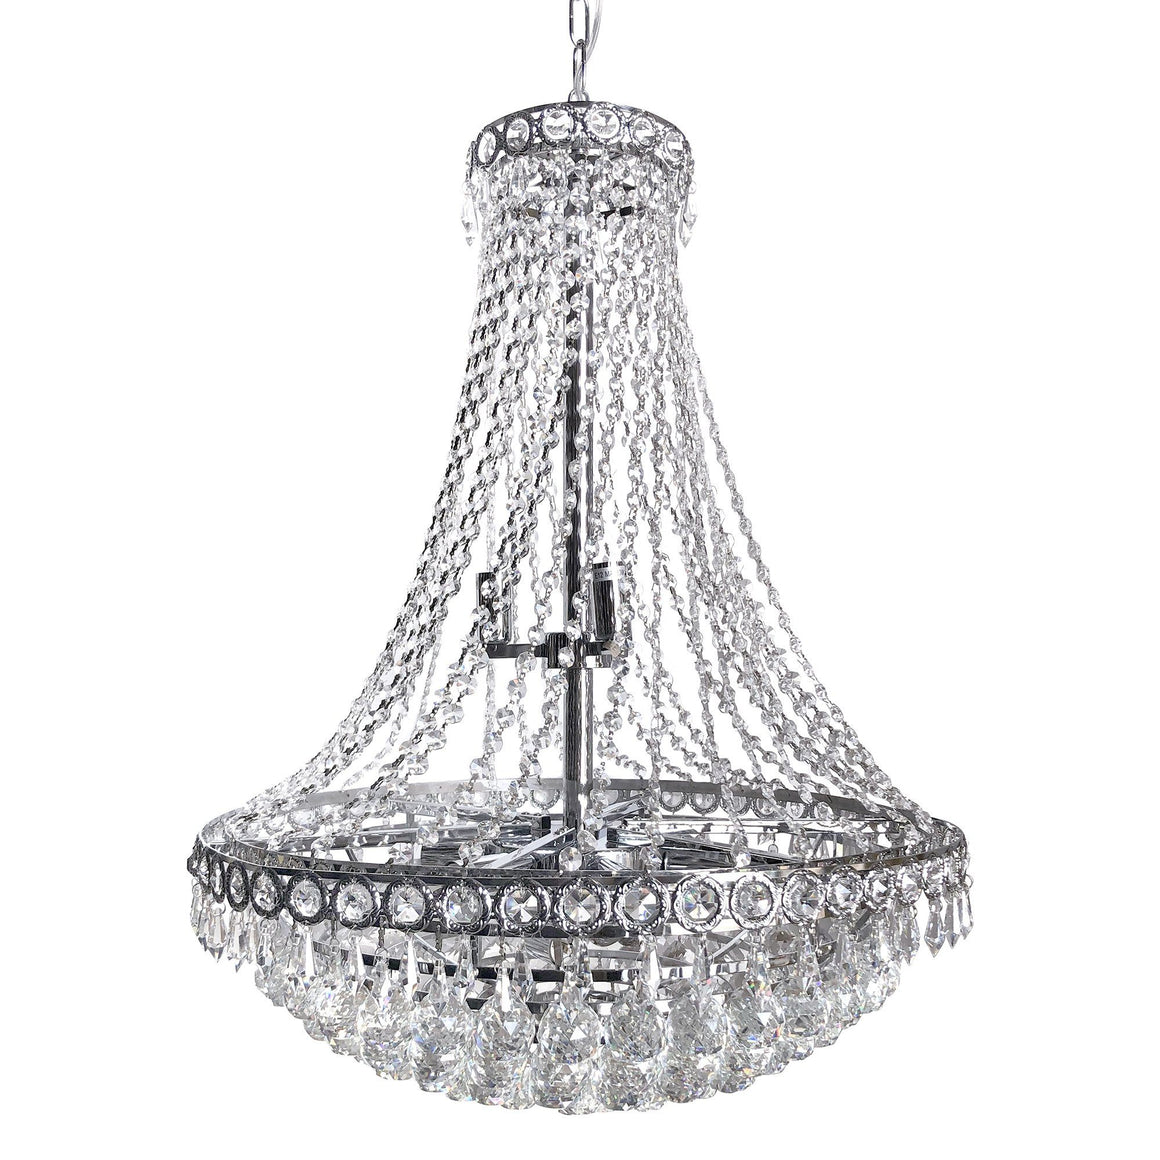 "Classic Empire Tiered Crystal Chandelier - French Art Deco Style - 24"" x 30"" - Rustic Deco Incorporated"